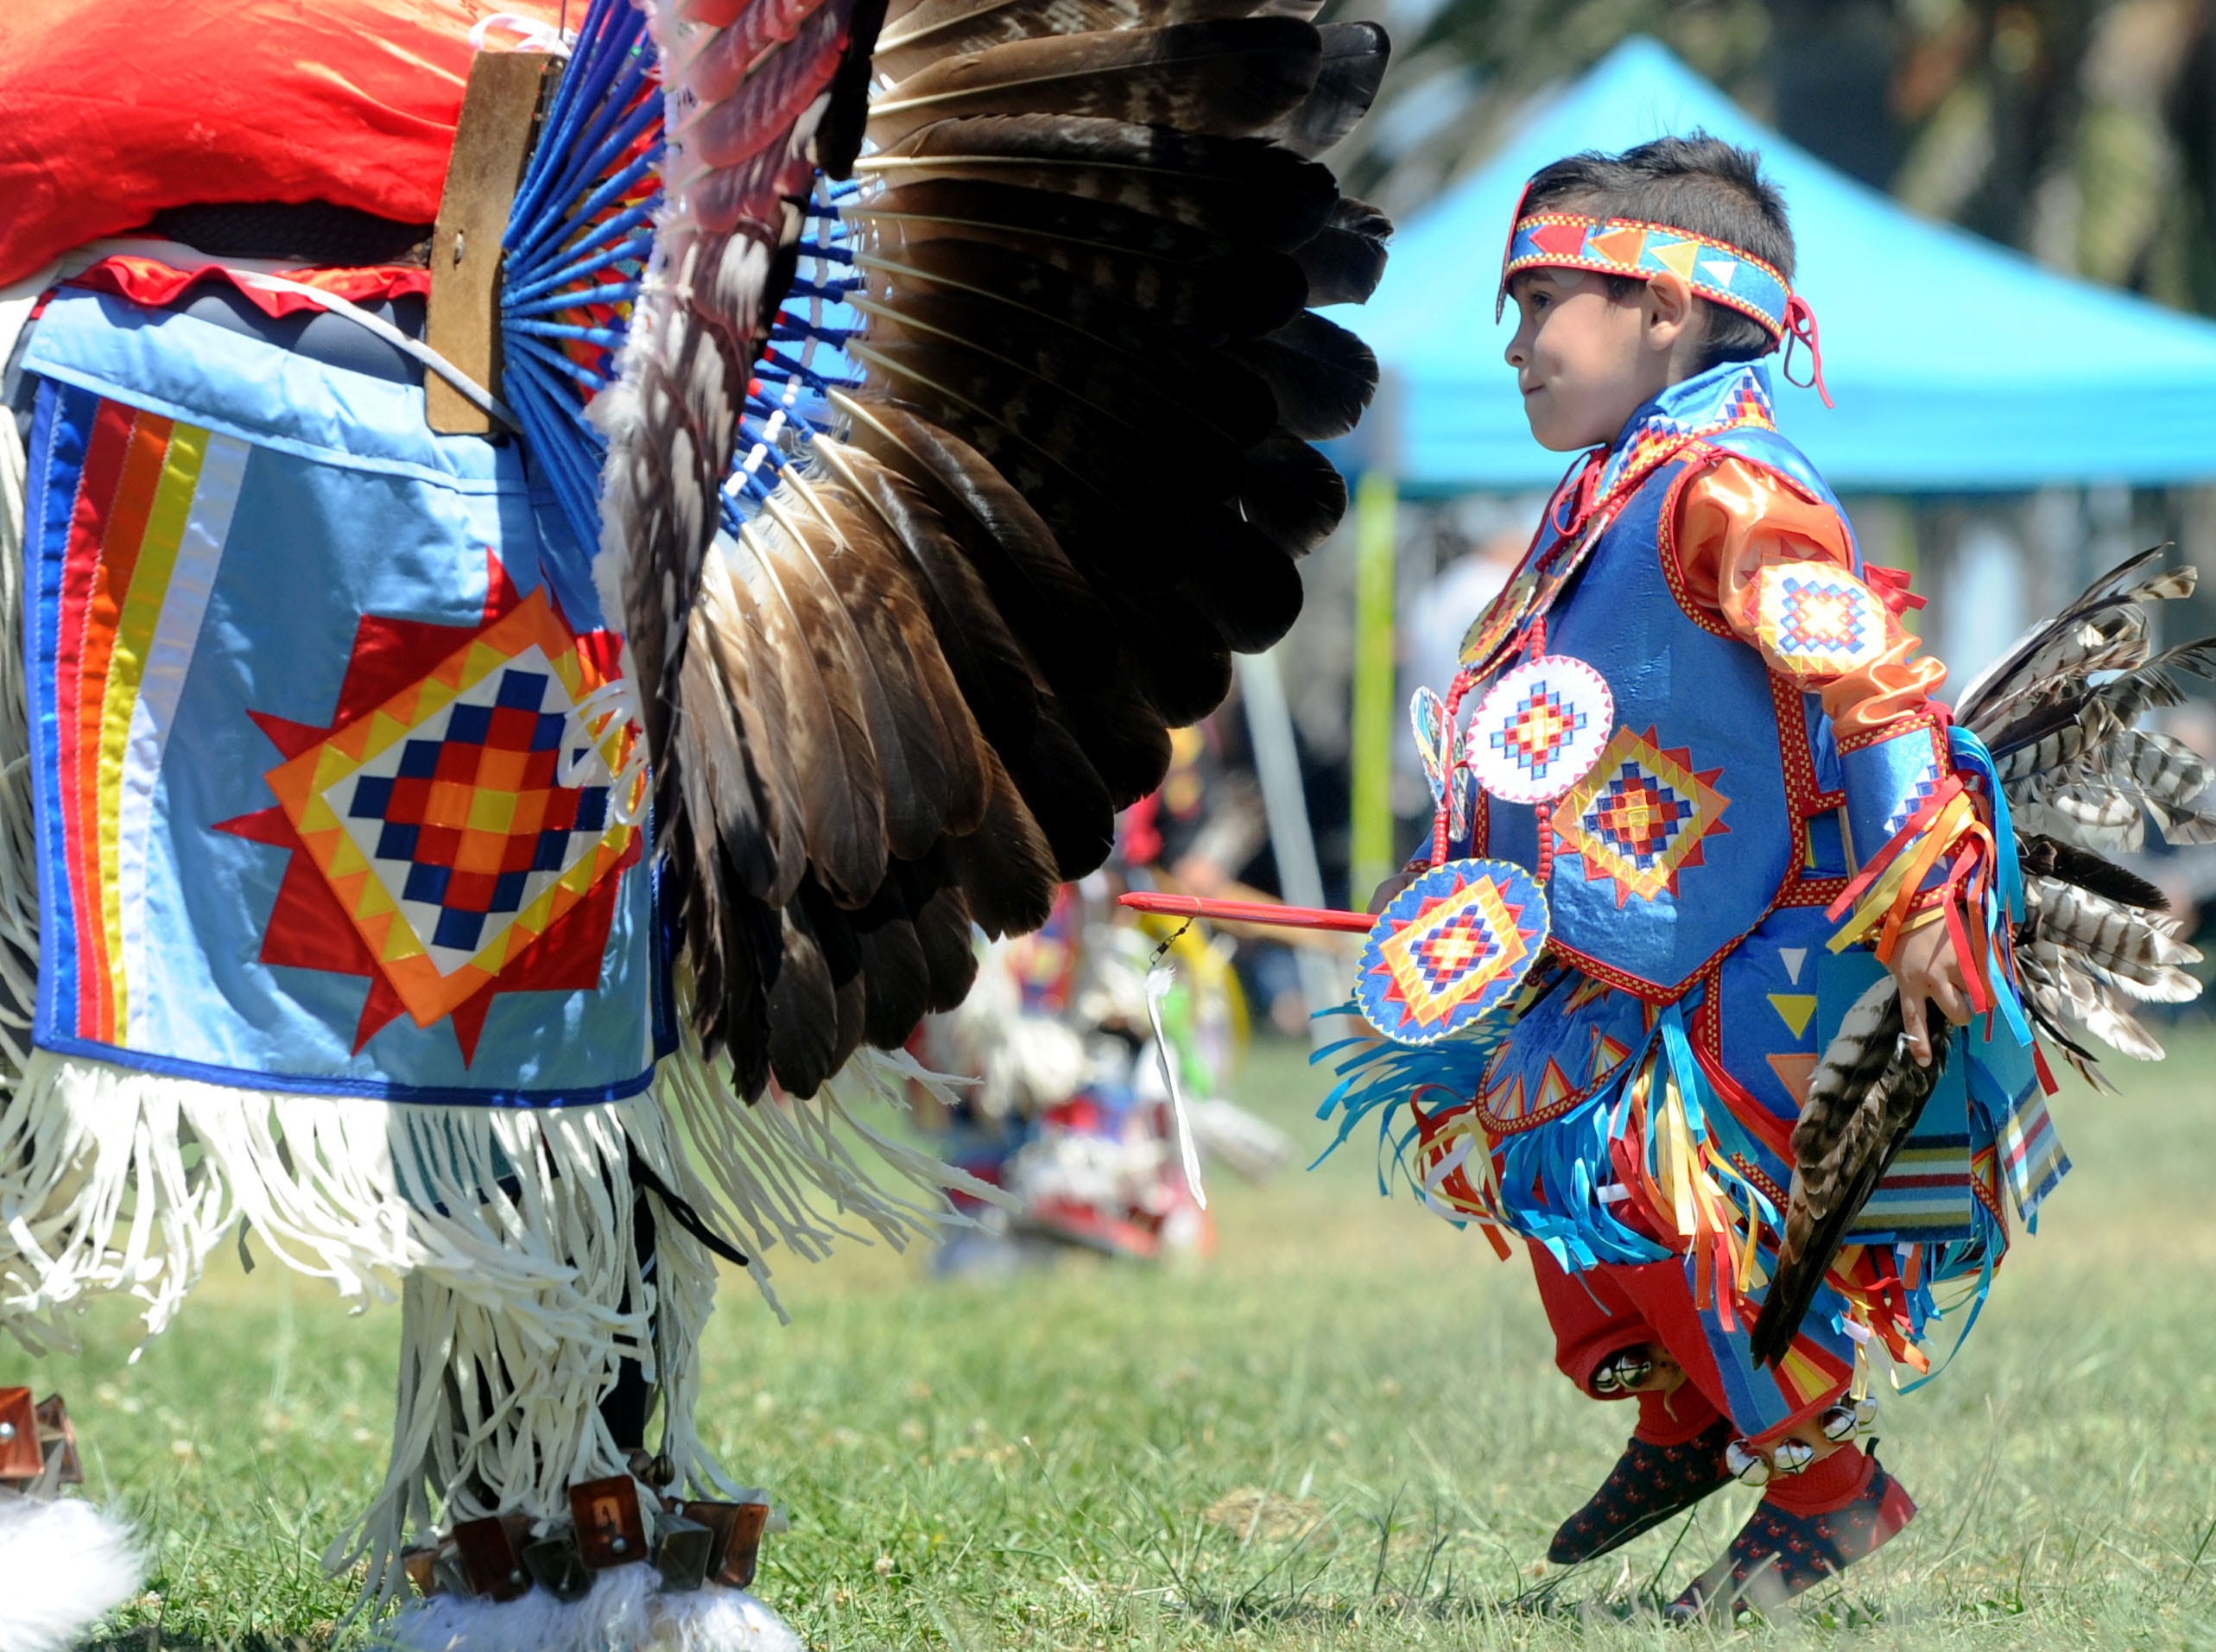 """Steven Gonzales, of Bakersfield, dances with his father, Tommy Gonzales, on Saturday during the intertribal powwow at Oxnard Beach Park. The theme was """"Honoring Our Elders and Veterans."""""""